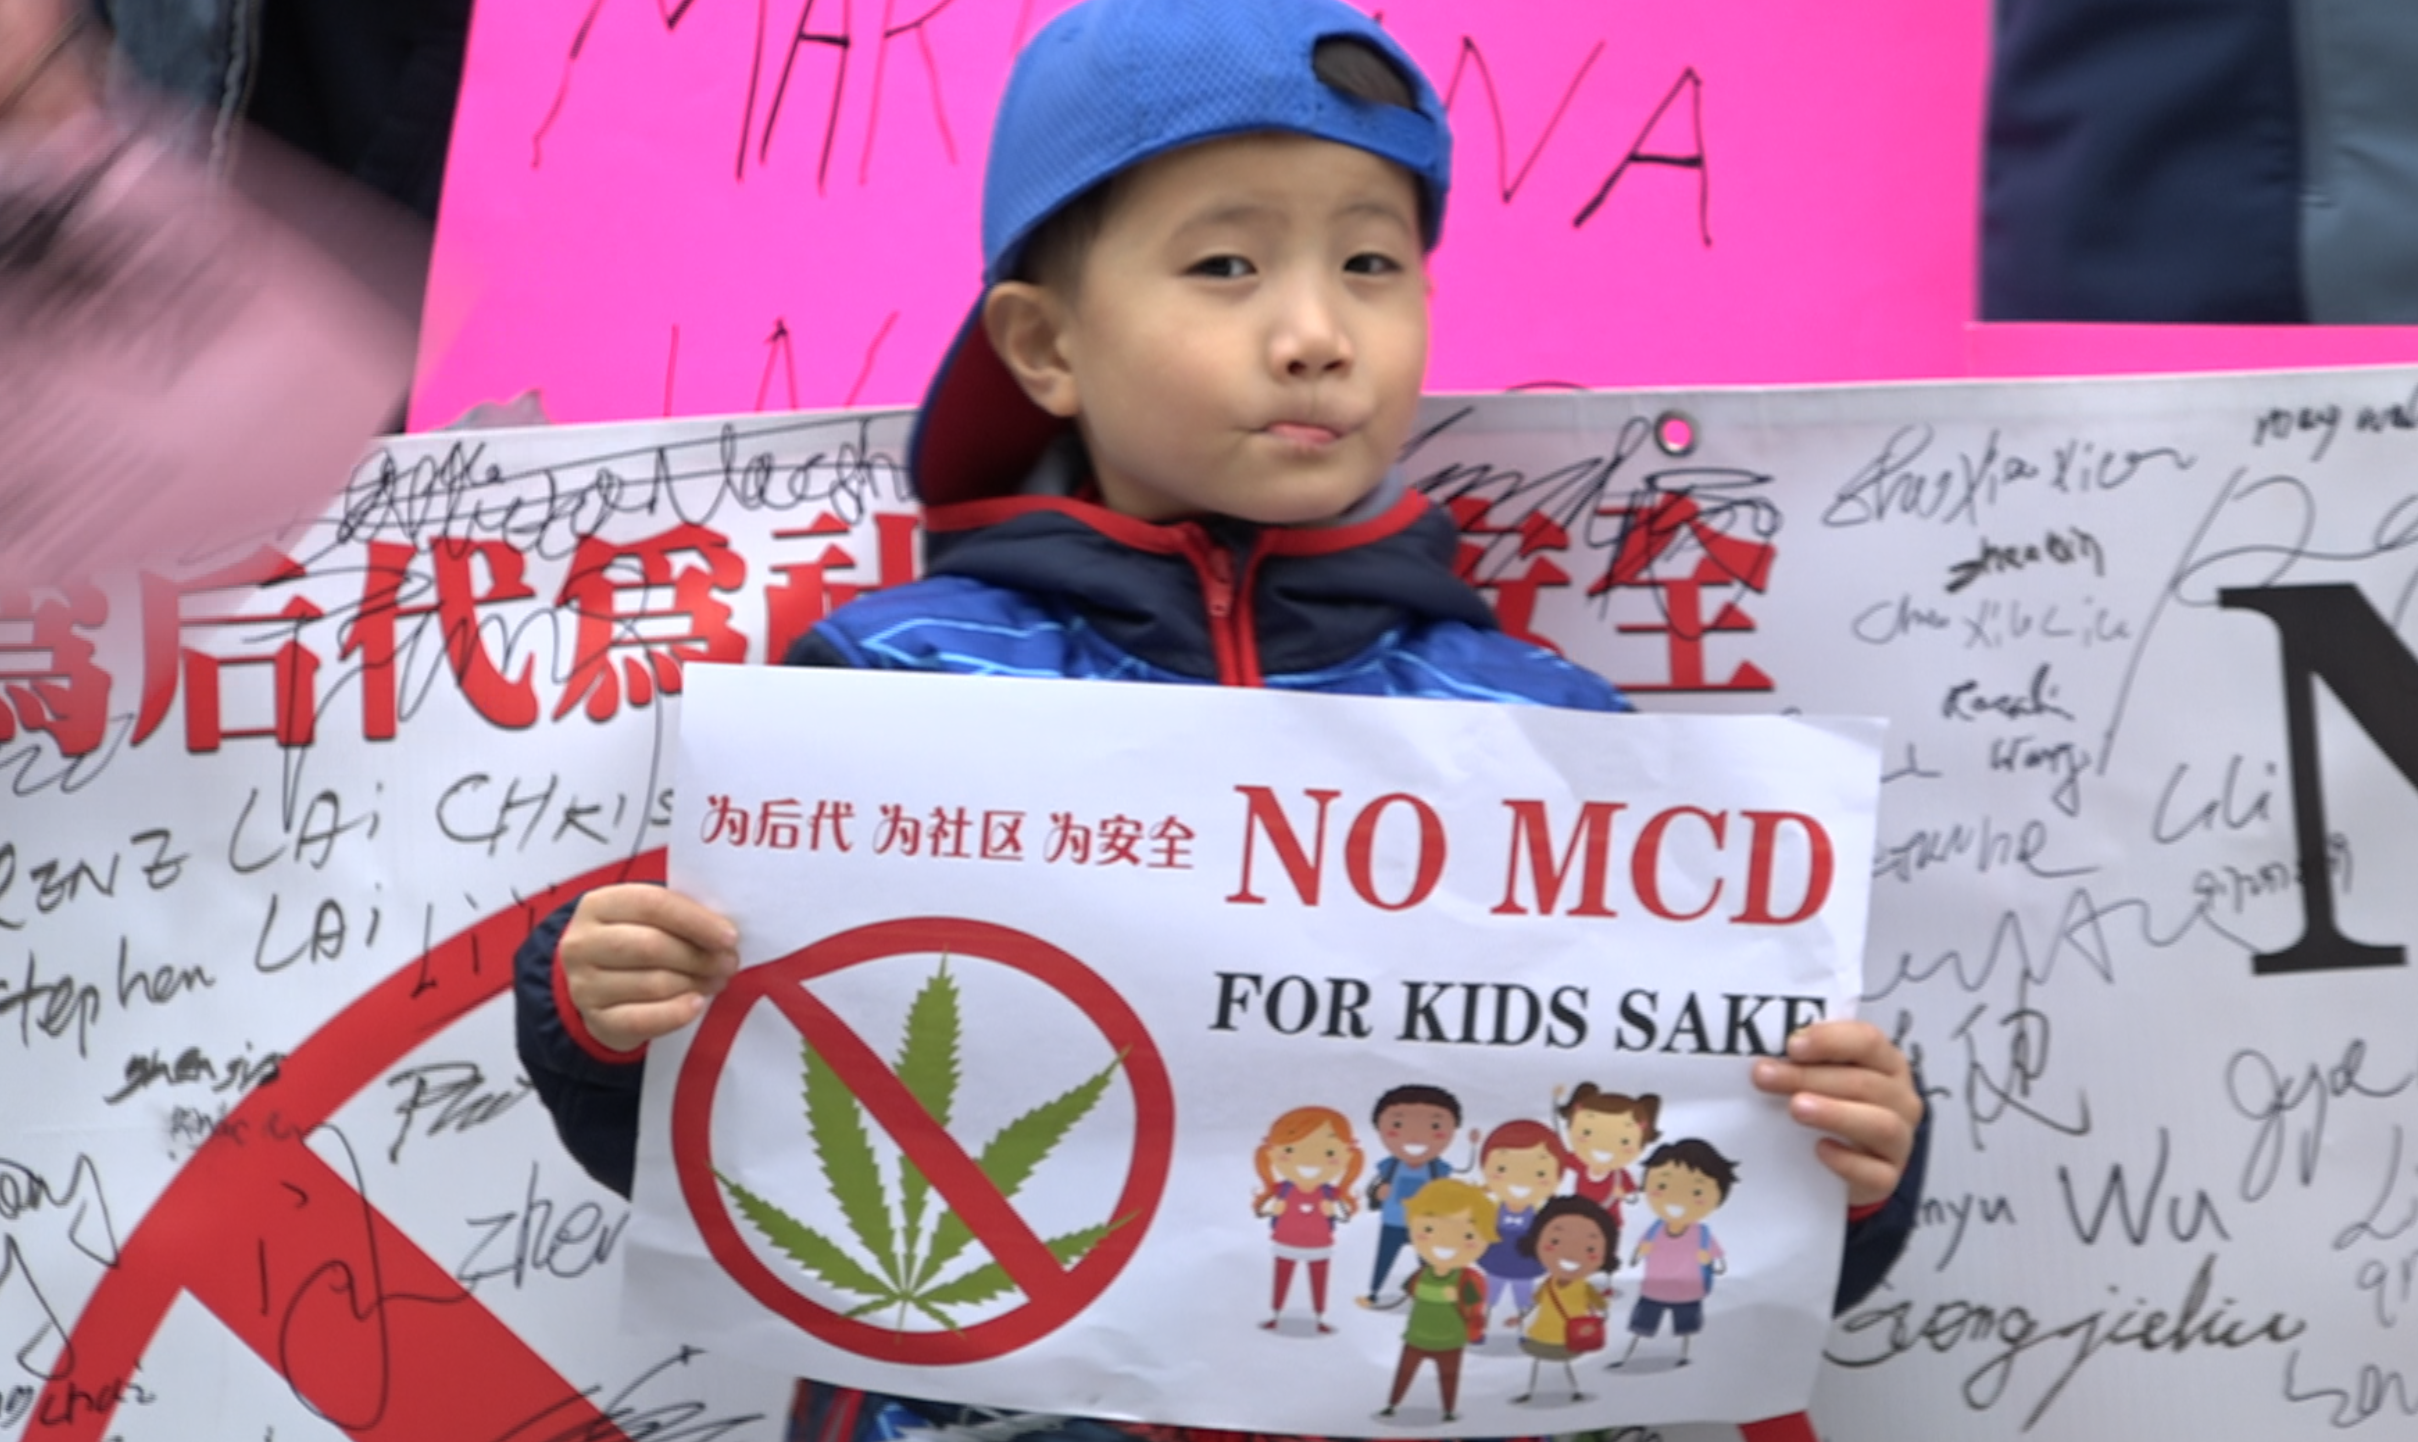 Kid Protesting against Marijuana